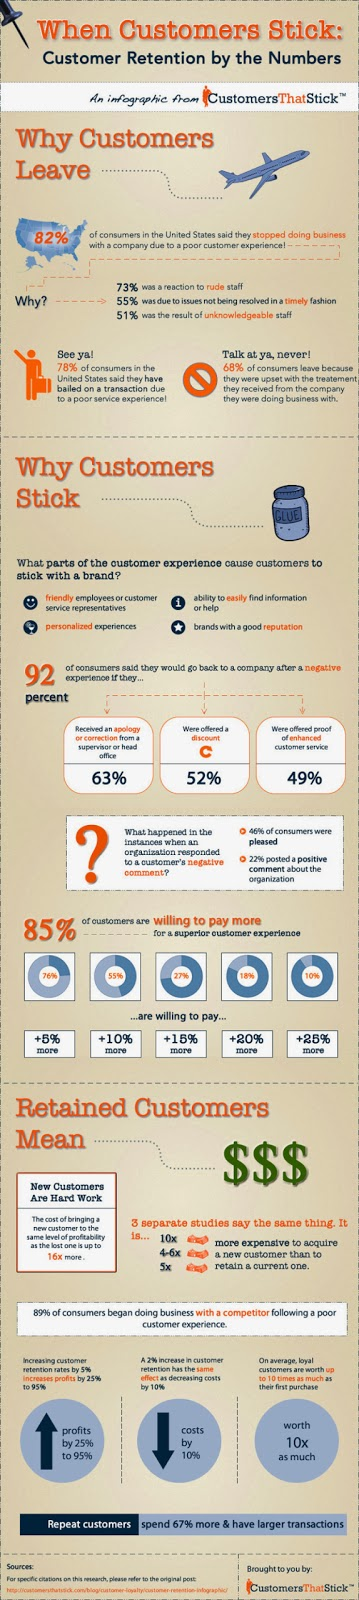 http://smallbiztrends.com/2013/08/customer-retention-infographic.html